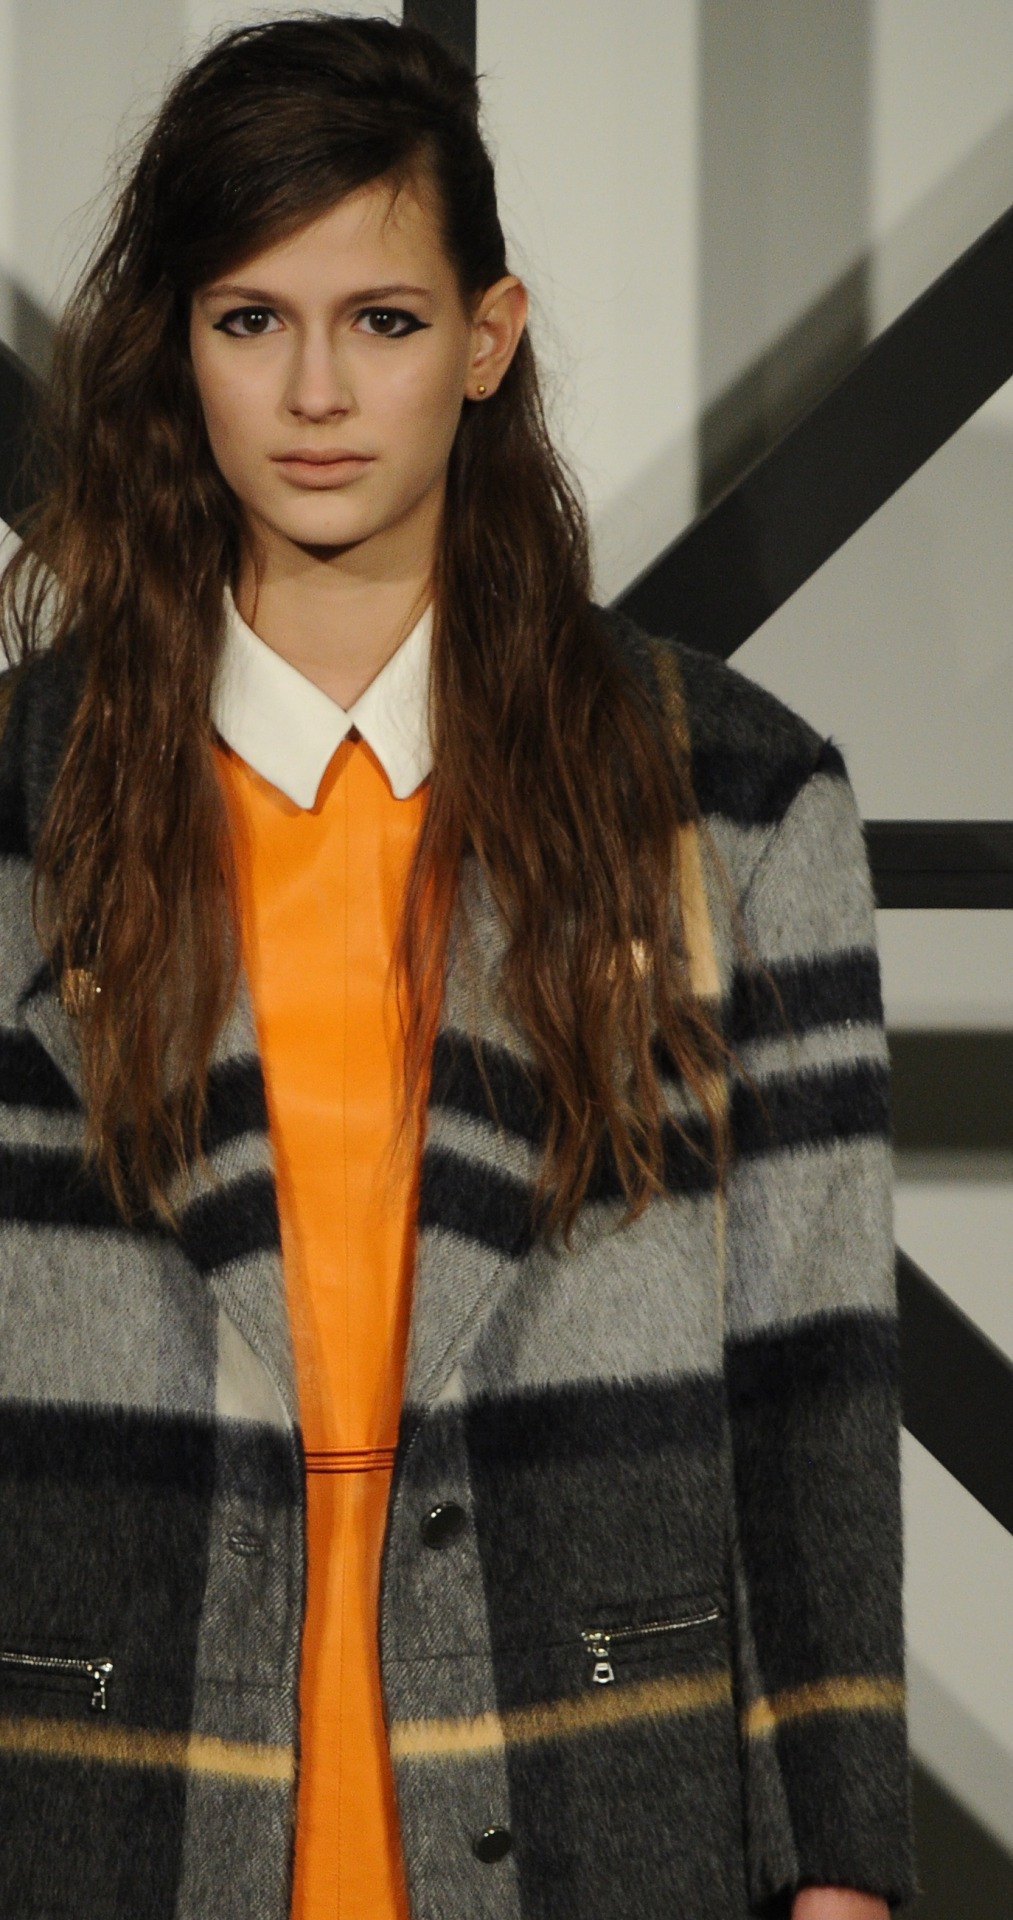 wgsn:  Remembering the Menswear AW13 Trends: Orange and Checks… Interpreted into womenswear at the @TanyaTaylorNYC show #NYFW